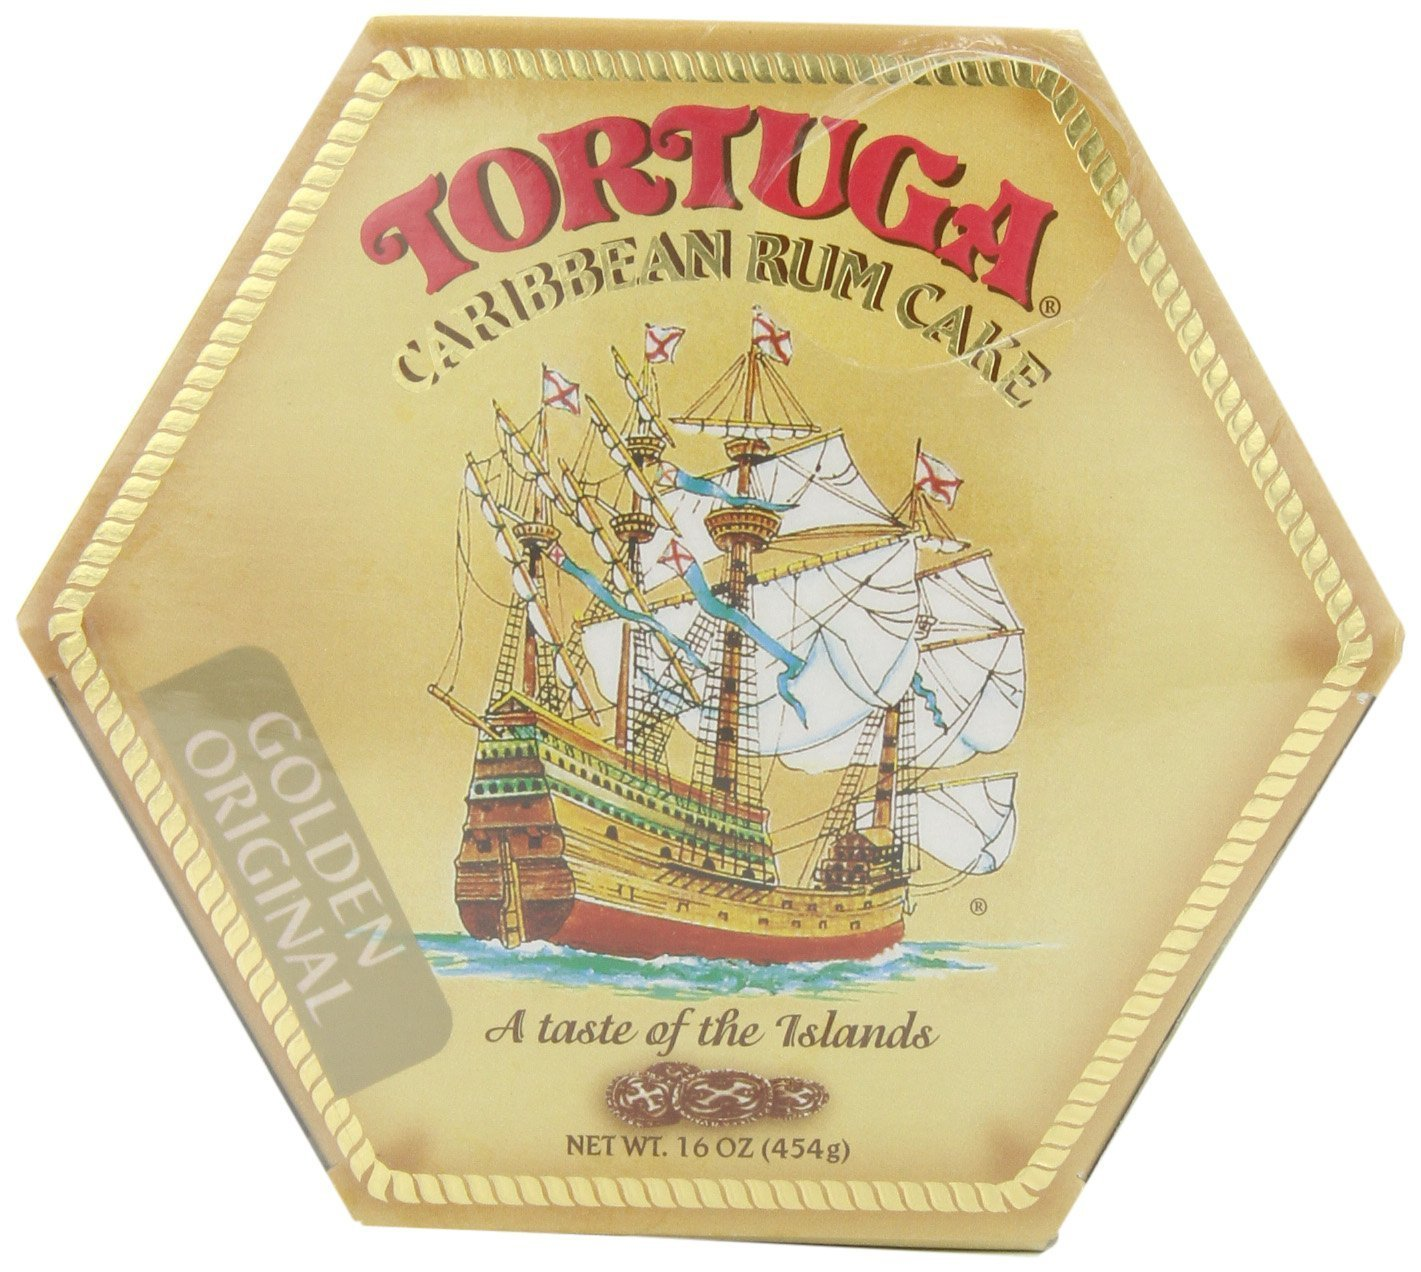 TORTUGA Caribbean Original Rum Cake with Walnuts – 16 oz. - 2 Pack - The Perfect Premium Gourmet Gift by TORTUGA (Image #1)